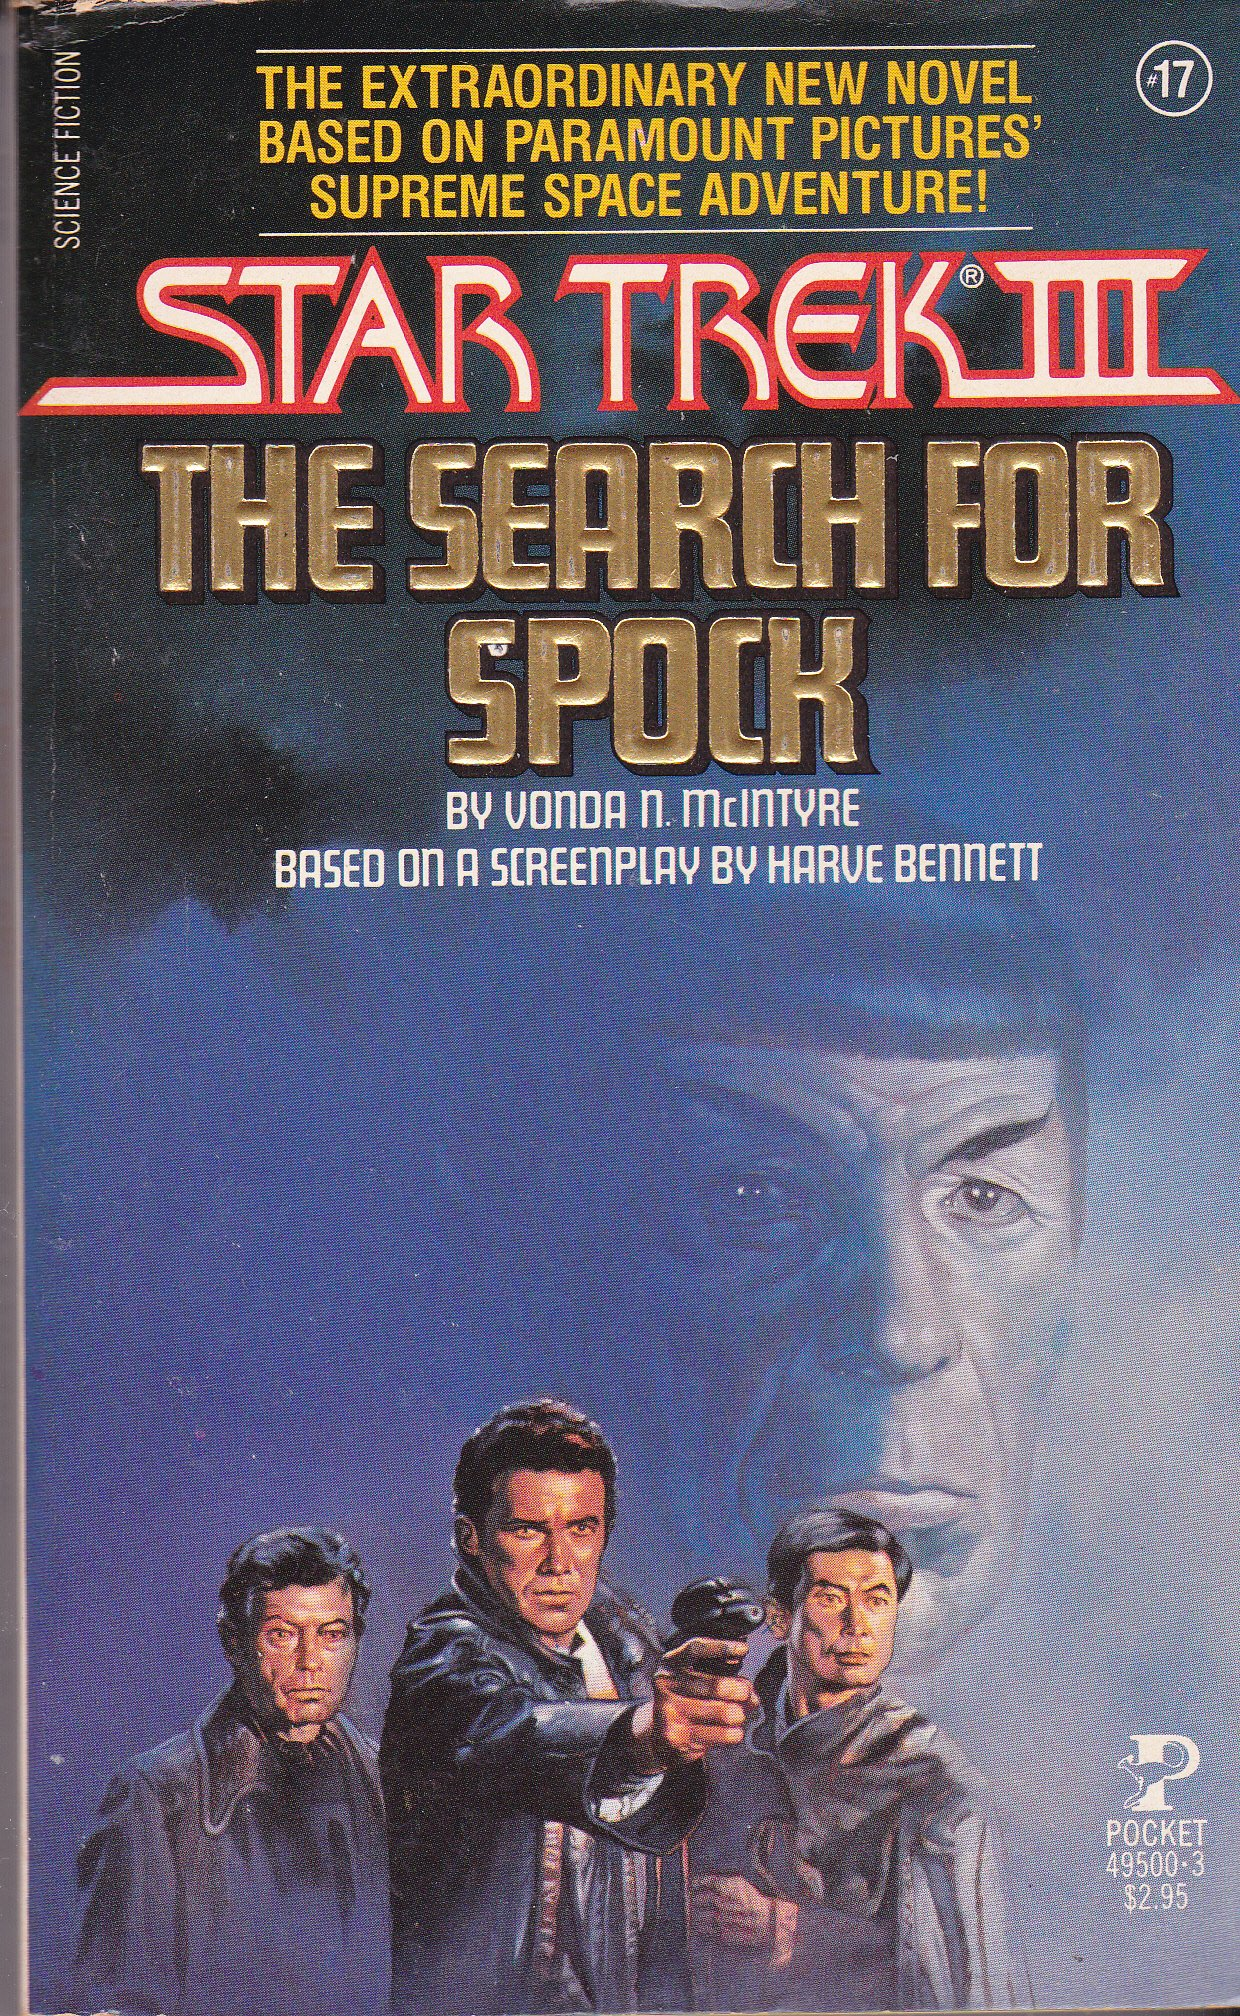 Star Trek III: The Search for Spock (Star Trek #17), McIntyre, Vonda N.; Harve Bennett